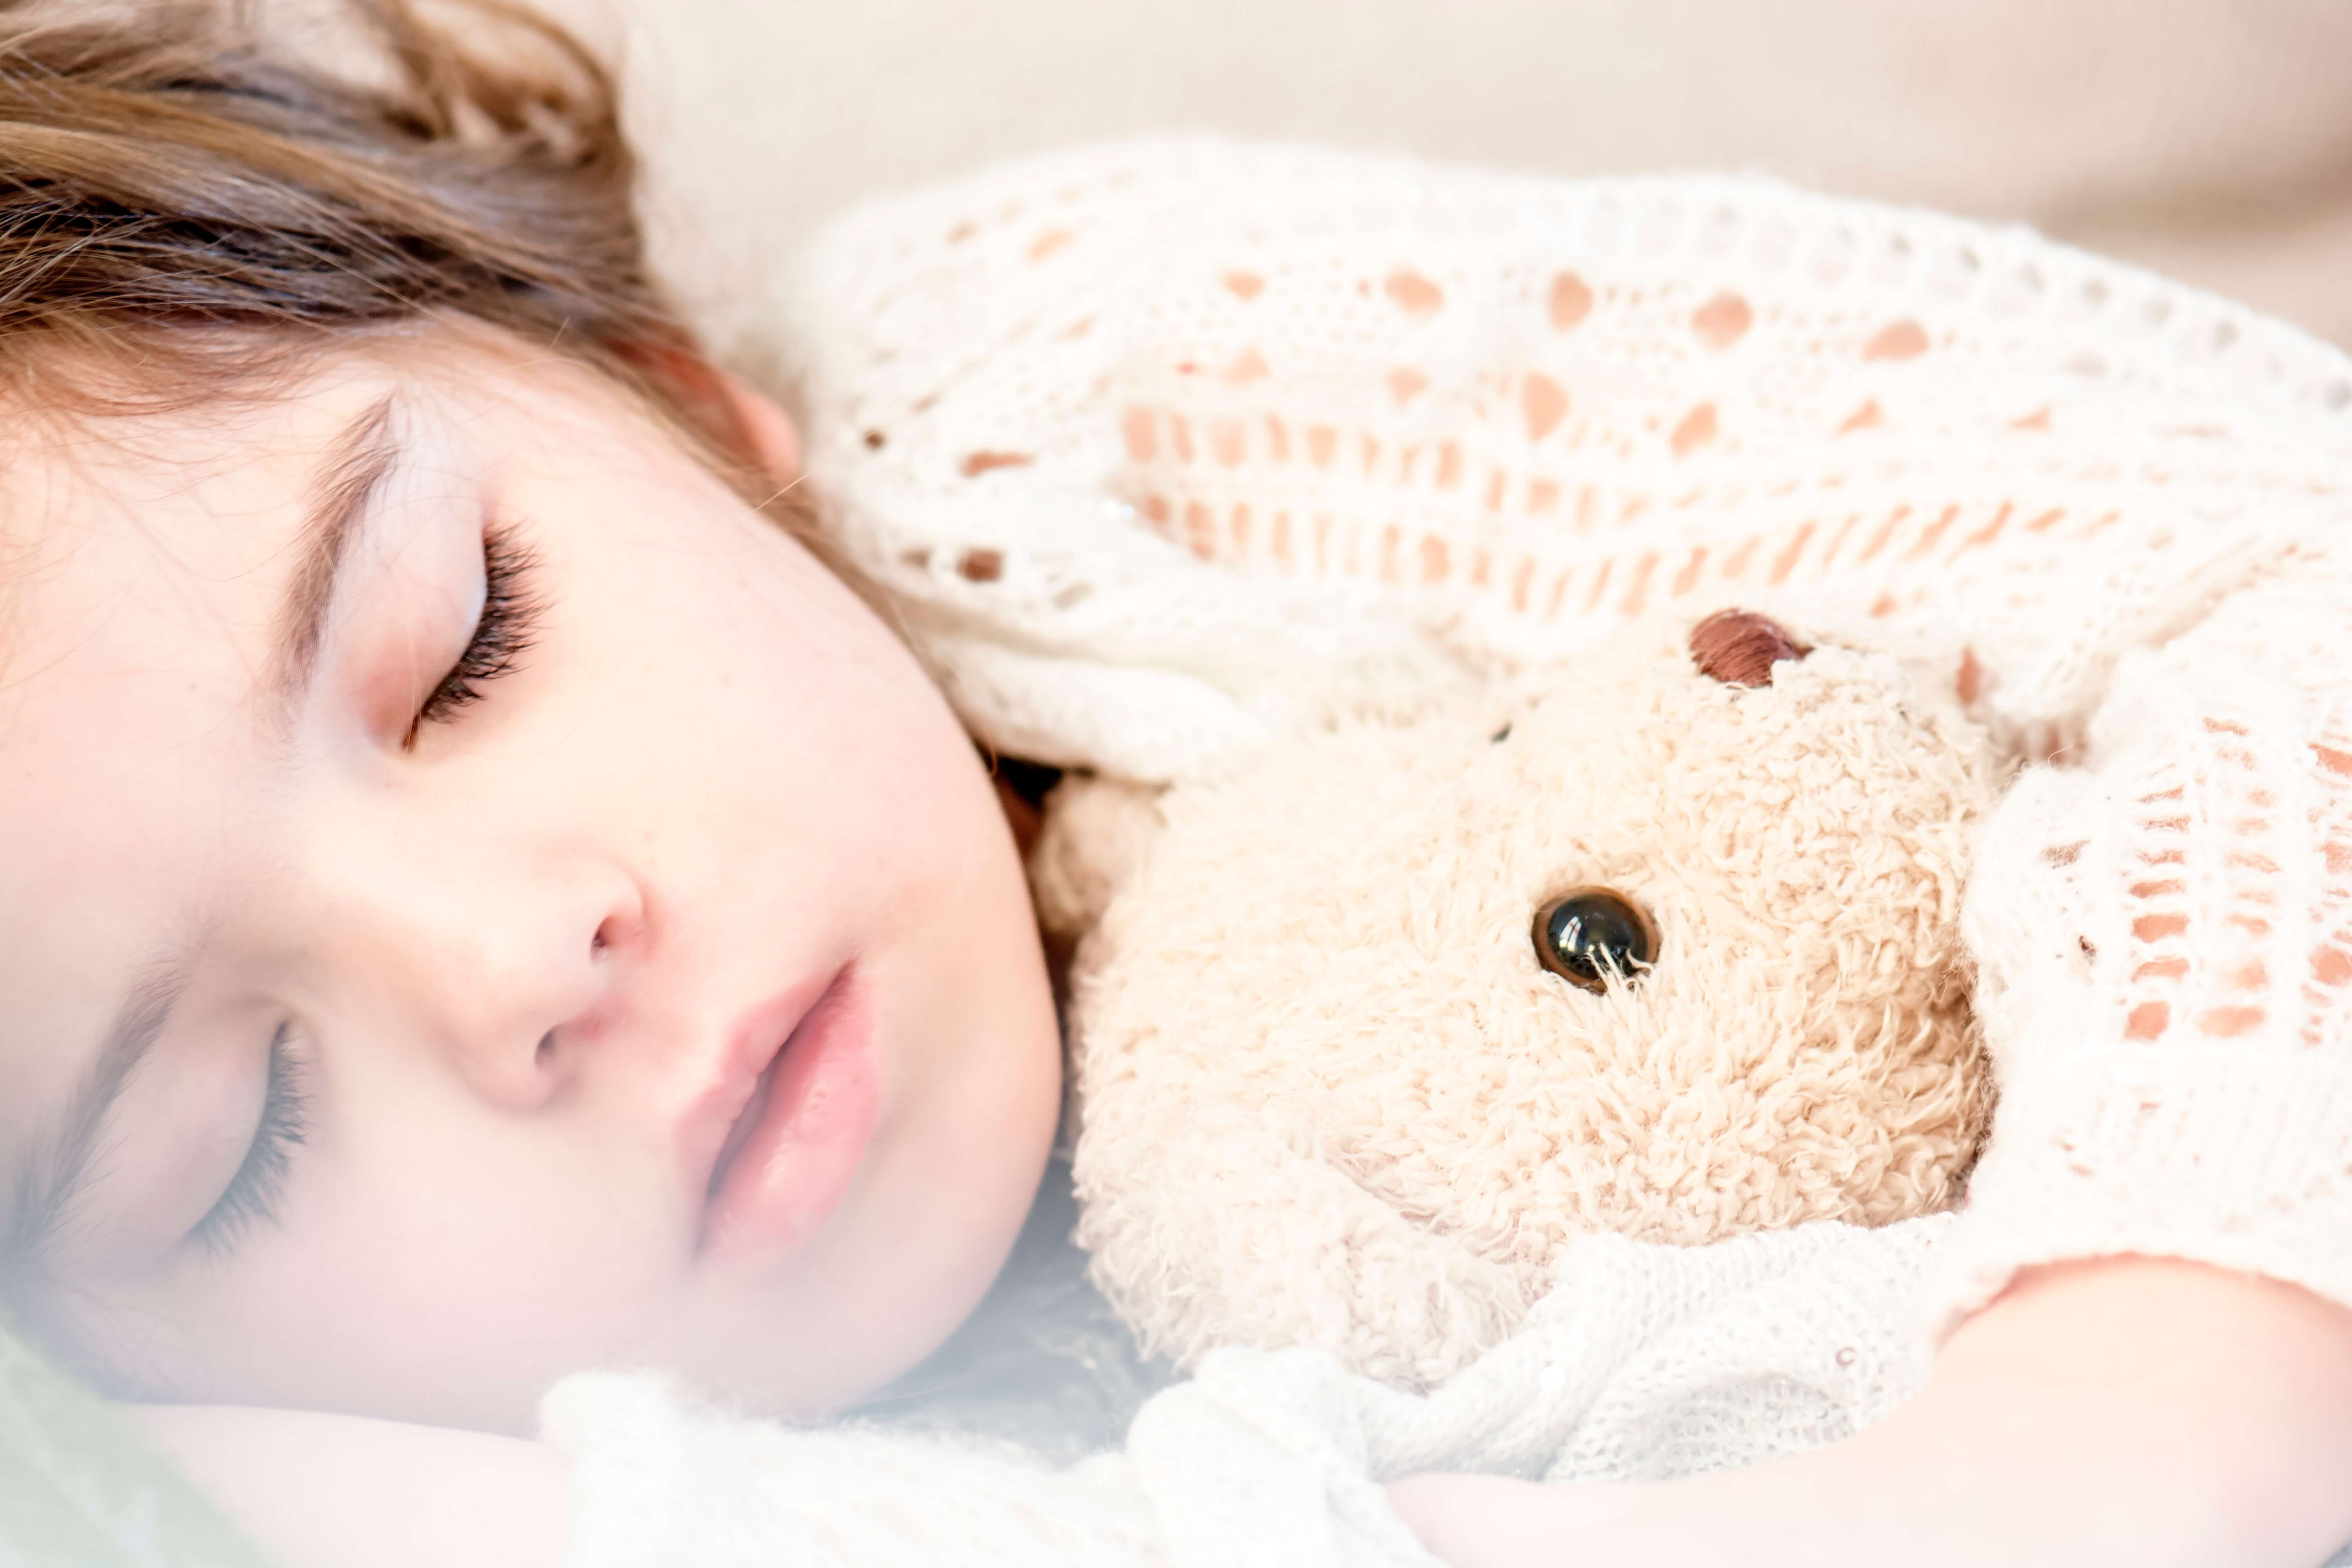 Has your little one had a night terror?  Check out this post to learn how to handle and prevent night terrors.